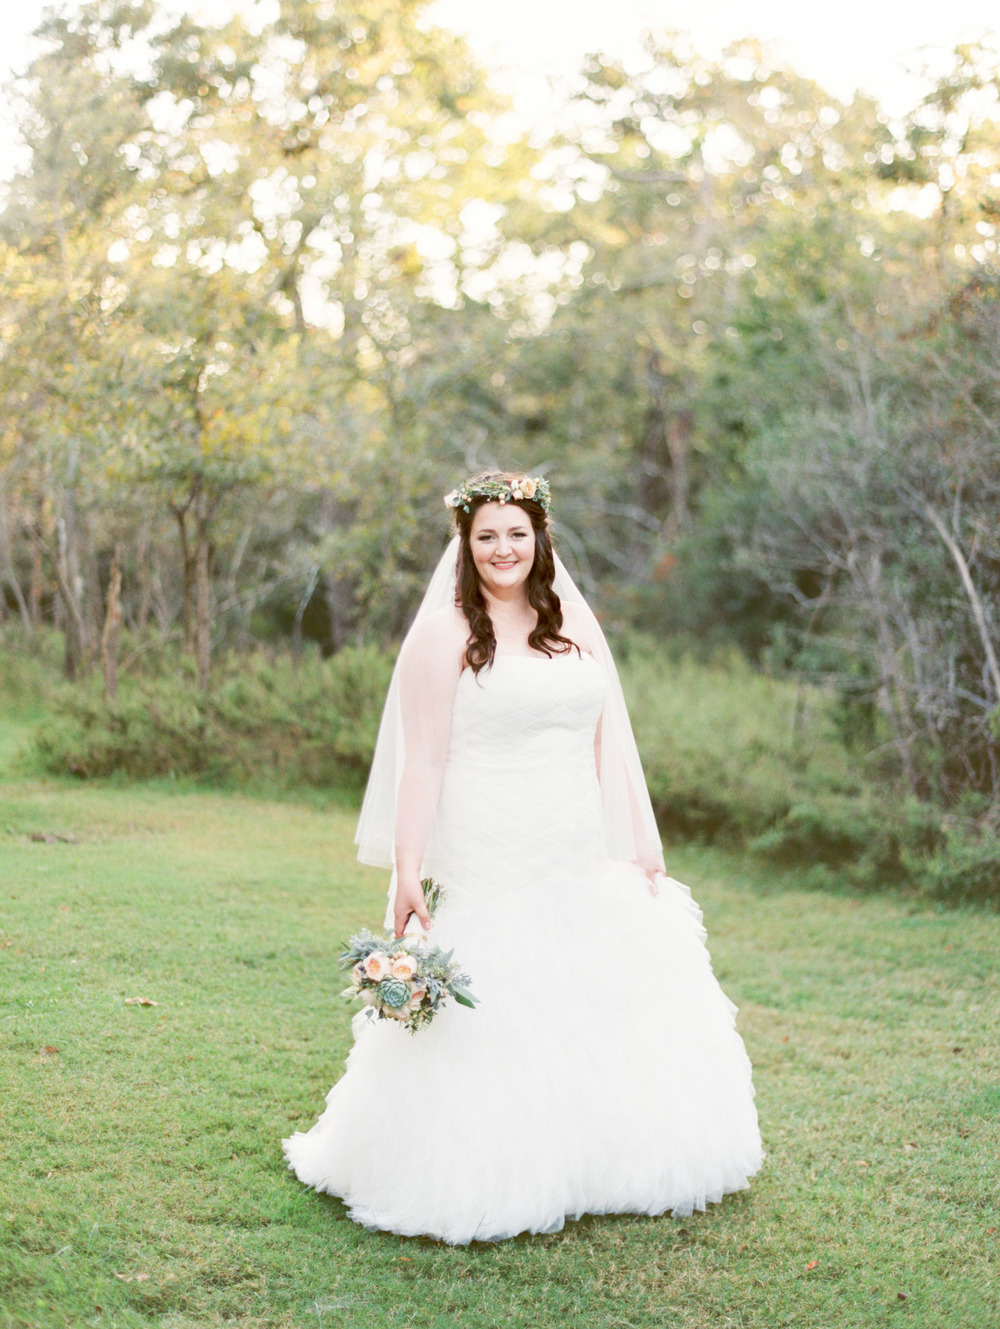 Sarah Best Photography - Elizabeth's Bridals - 7F Lodge-117.jpg